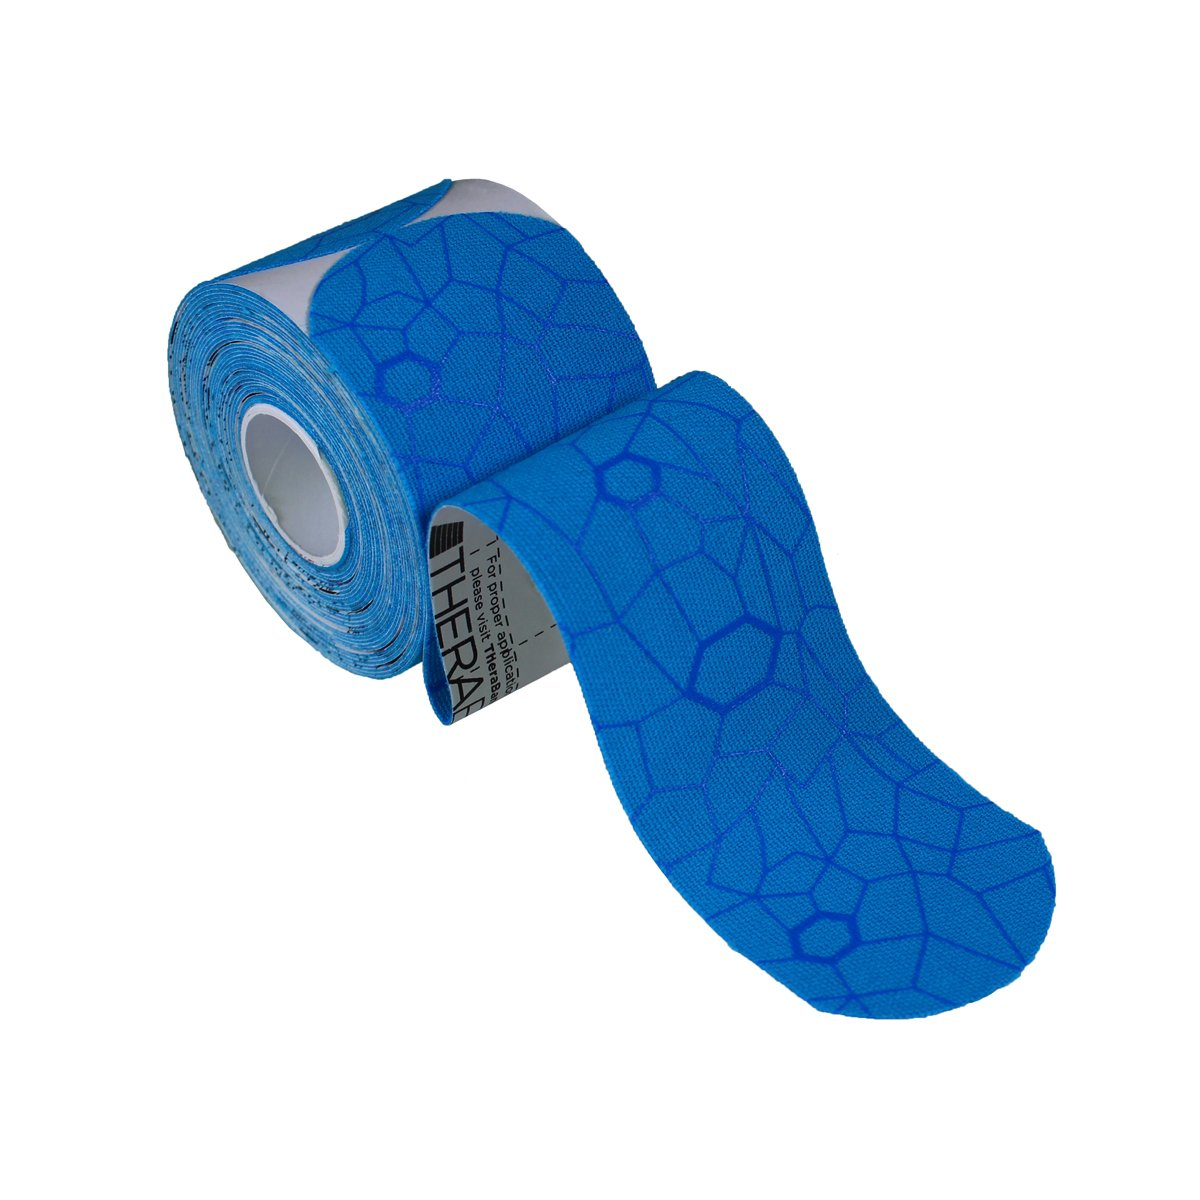 TheraBand Kinesiology Tape, Waterproof Physio Tape for Pain Relief, Muscle & Joint Support, Standard Roll with XactStretch Application Indicators, 2'' X 10'' Strips, 20 Precut Strips, Blue/Blue